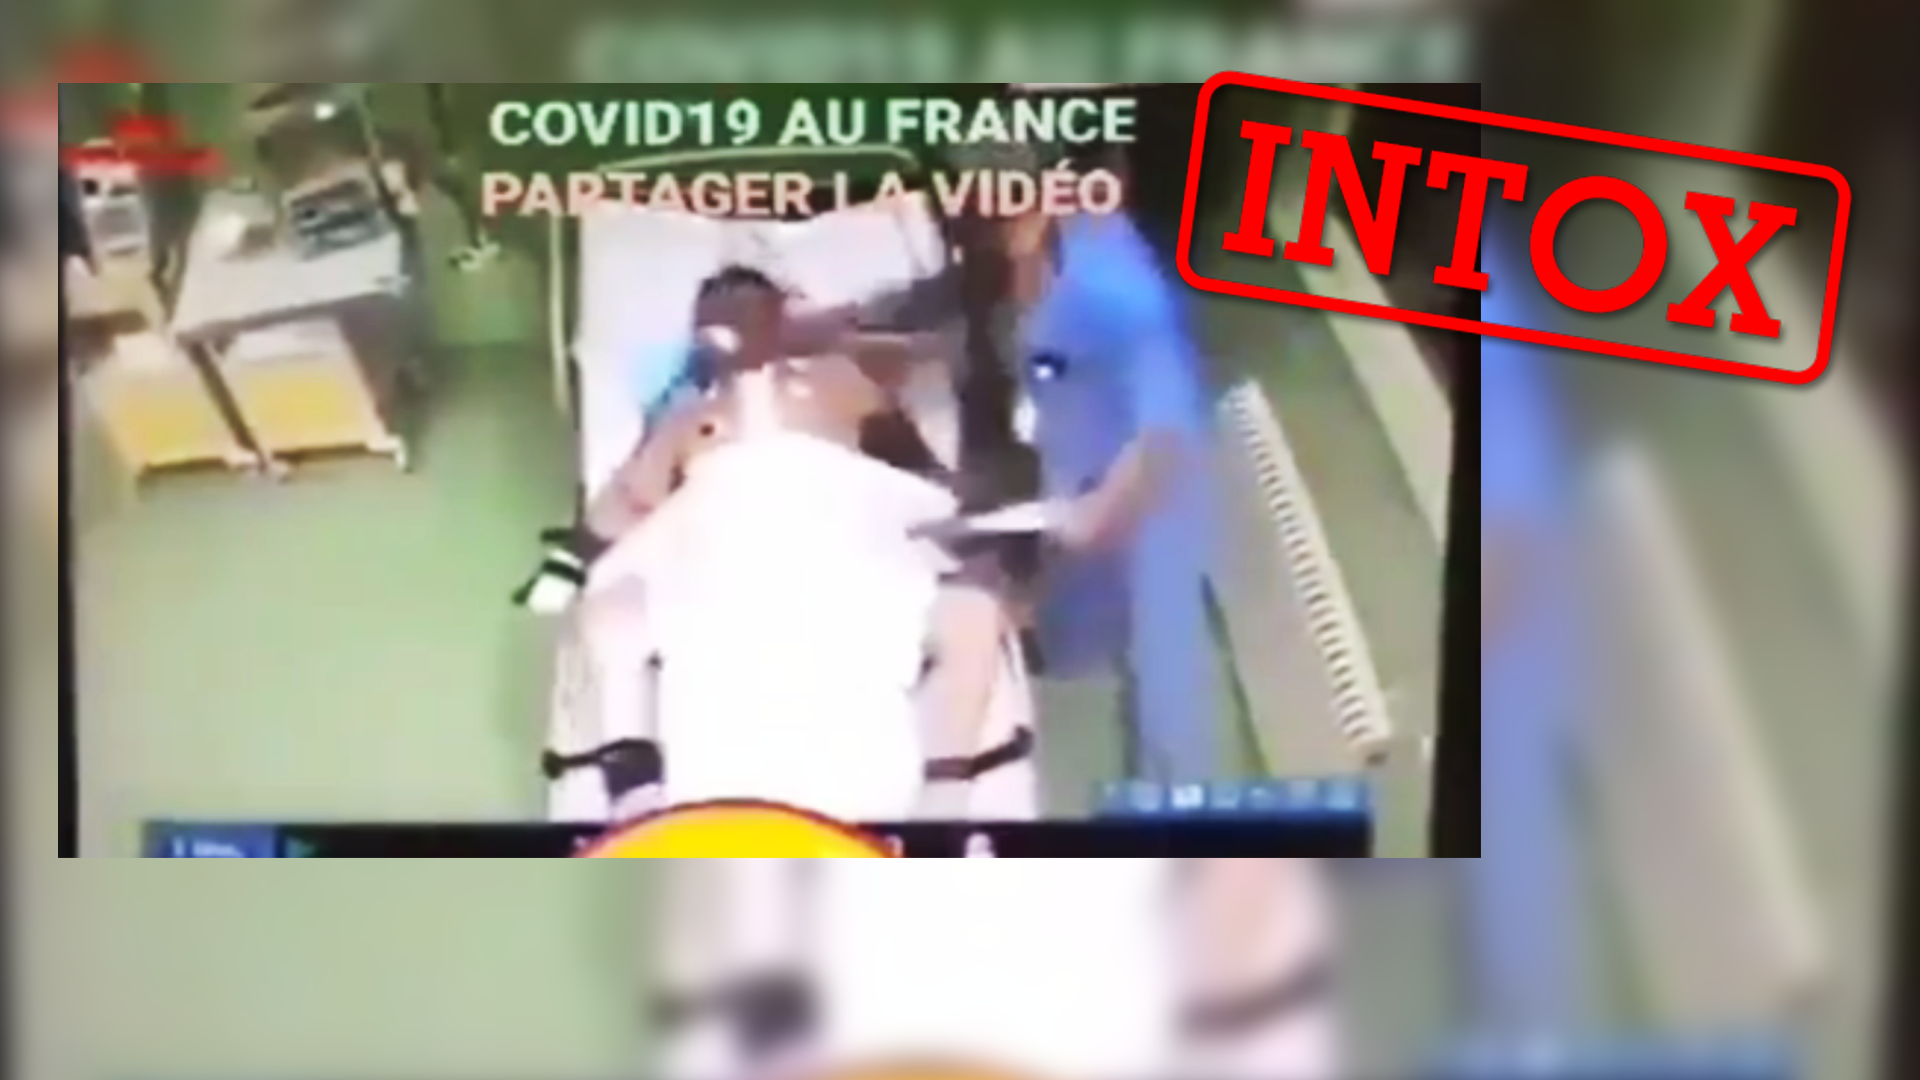 intox-video-covid-hopital-frappe-1